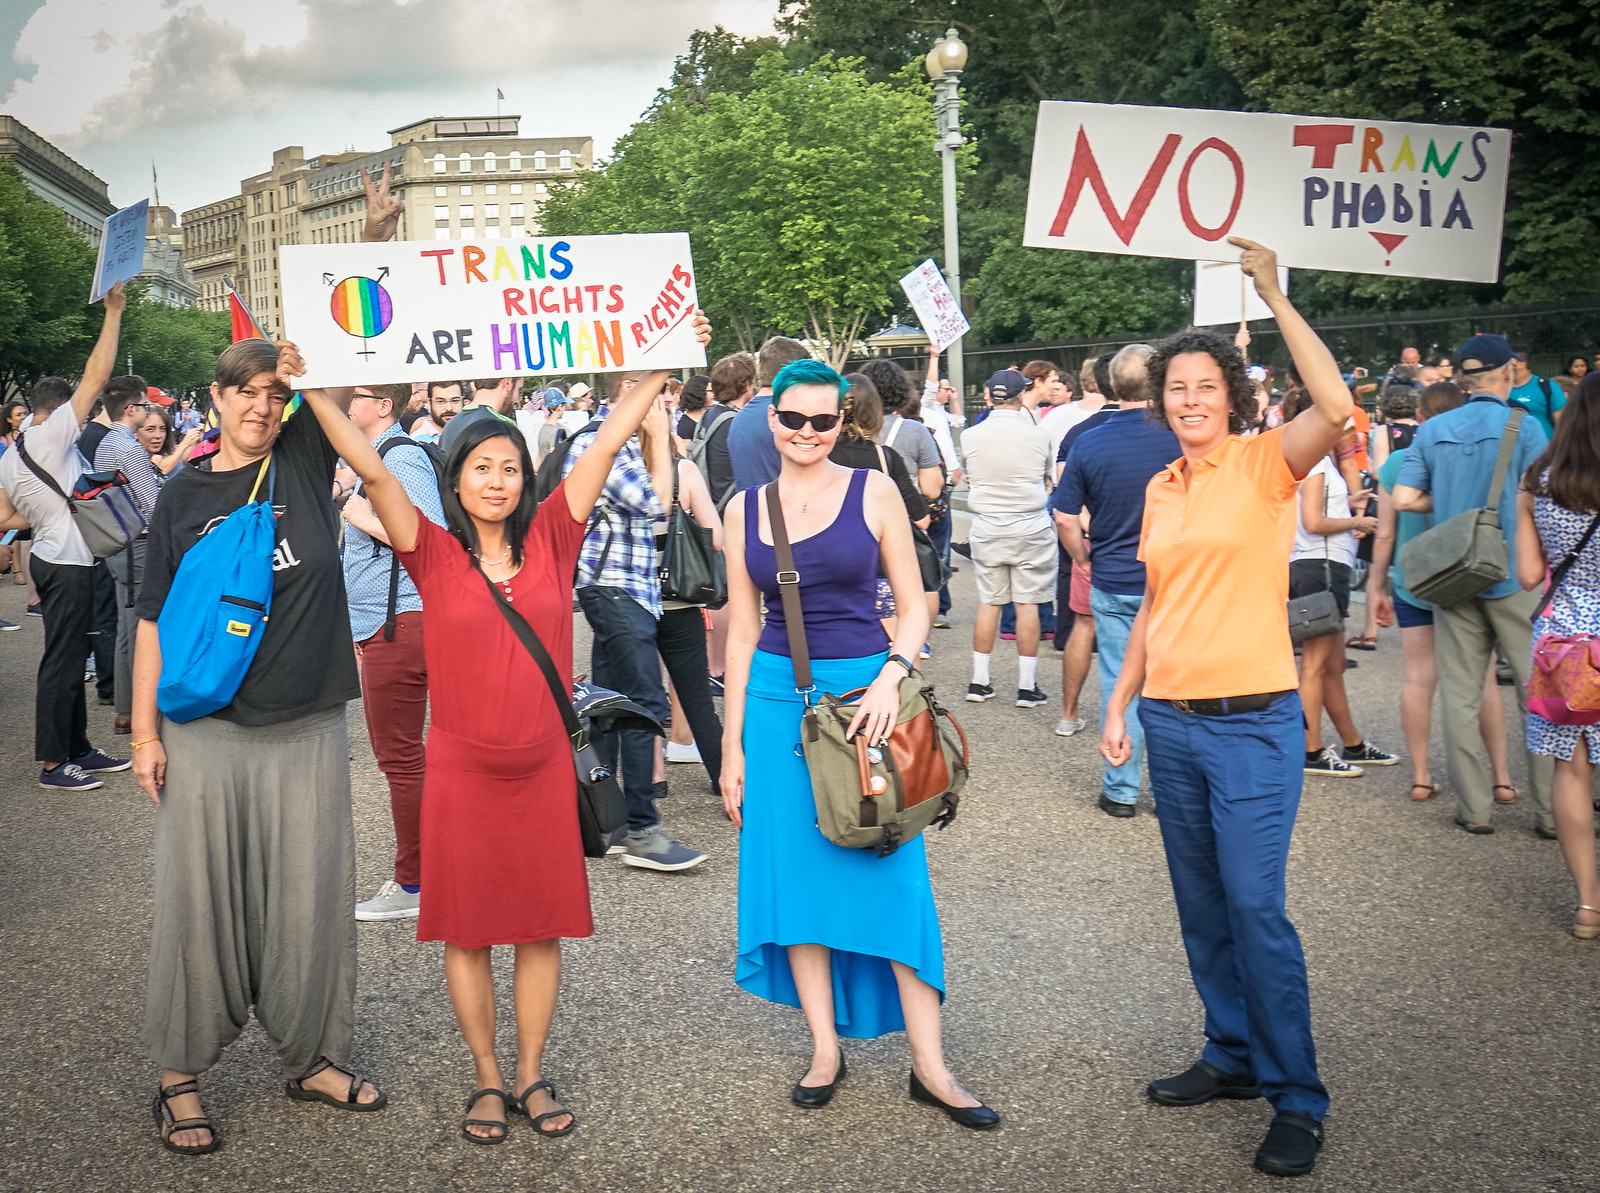 2017.07.26 Protest Trans Military Ban, White House, Washington DC USA 7631